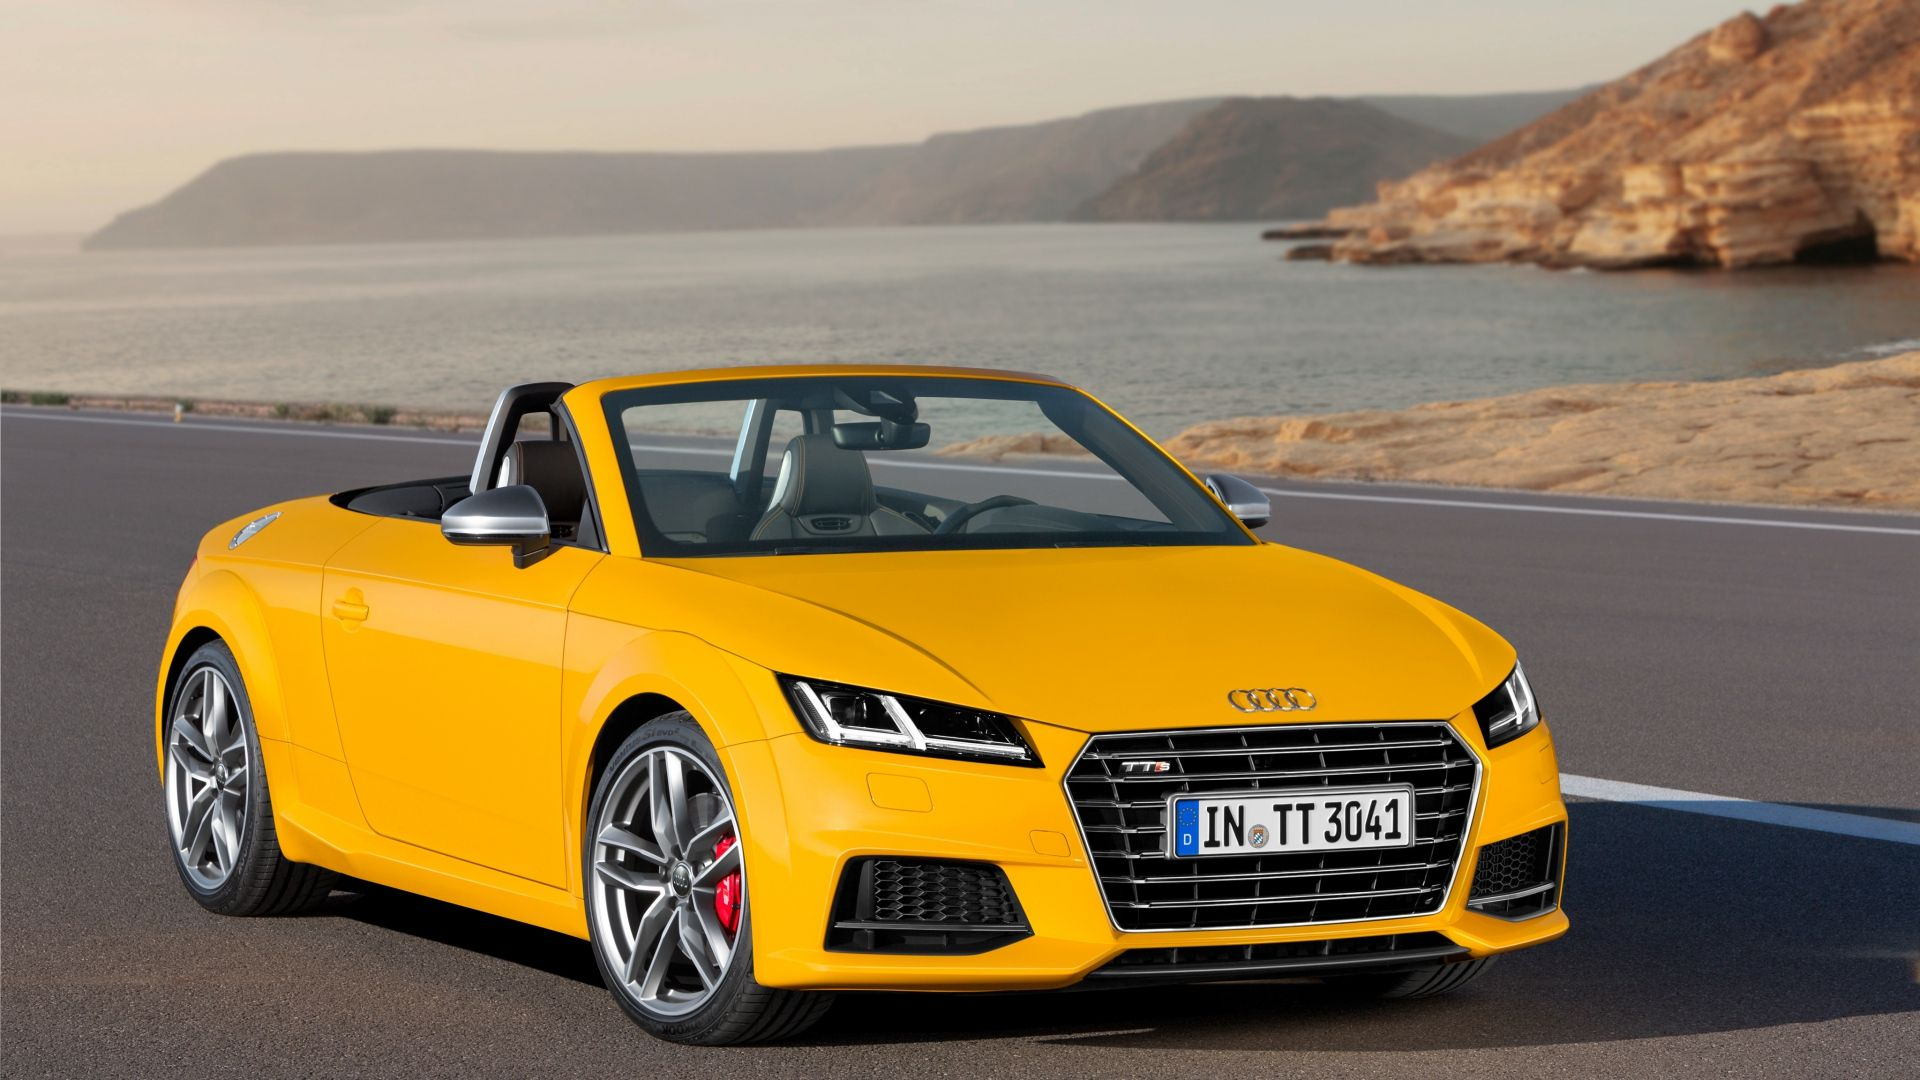 audi tt roadster, hd sports car wallpapers and backgrounds